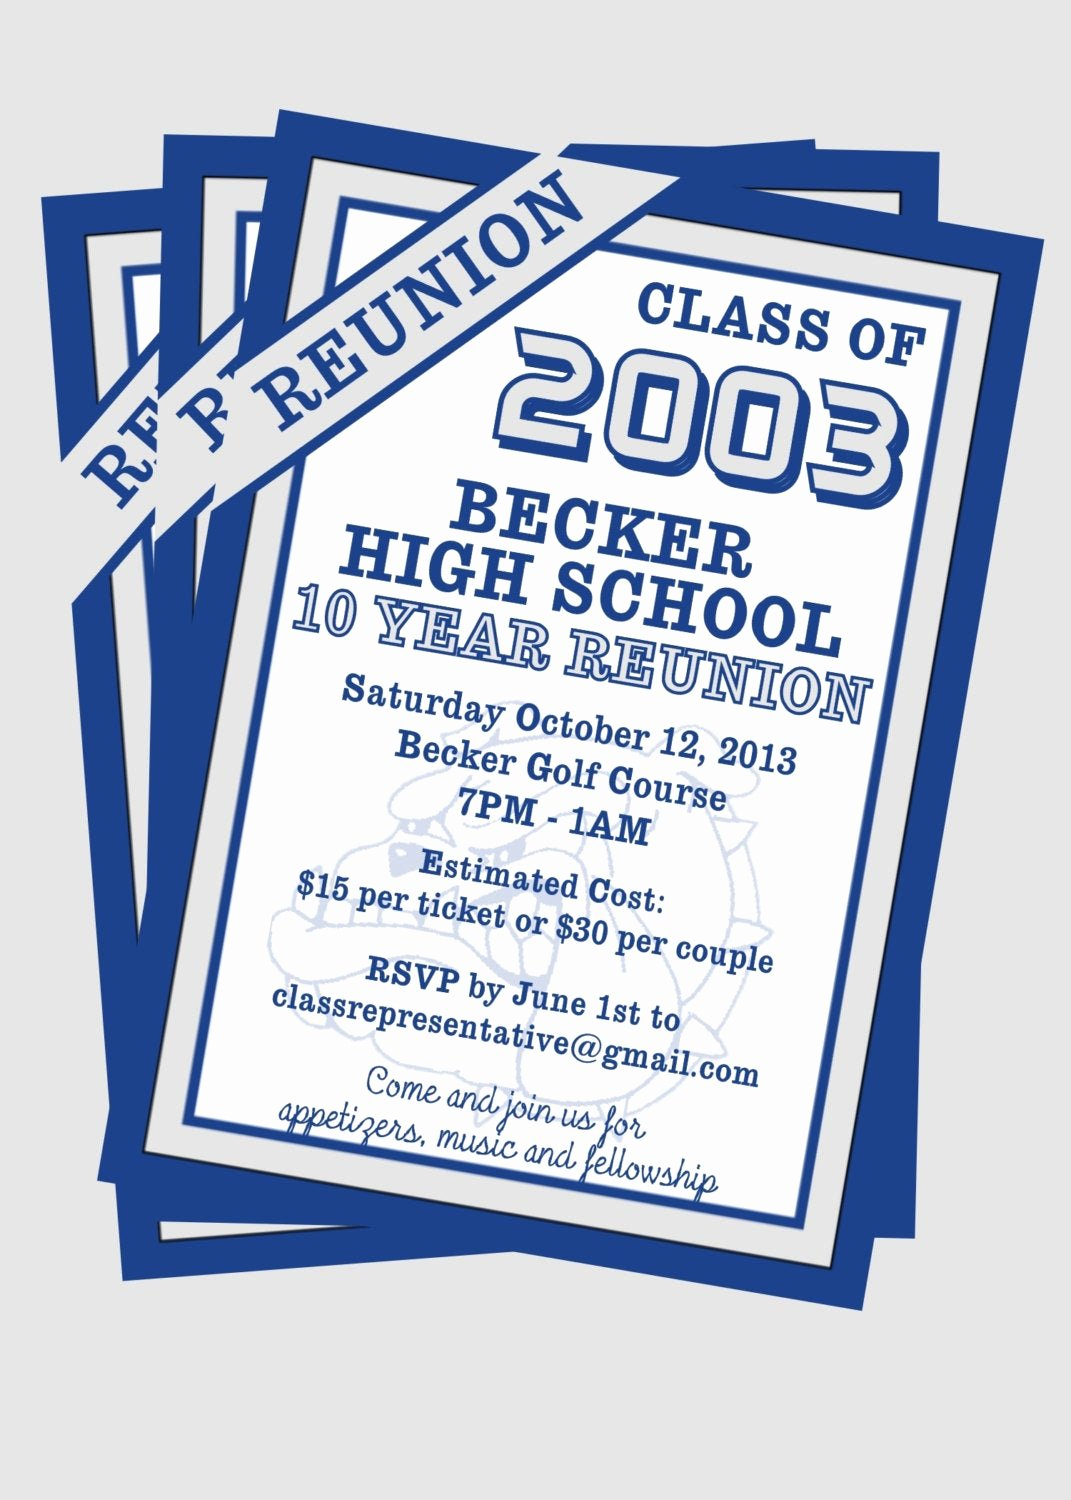 Class Reunion Invitation Template Free Elegant Class Reunion Invitation Customize with Your by